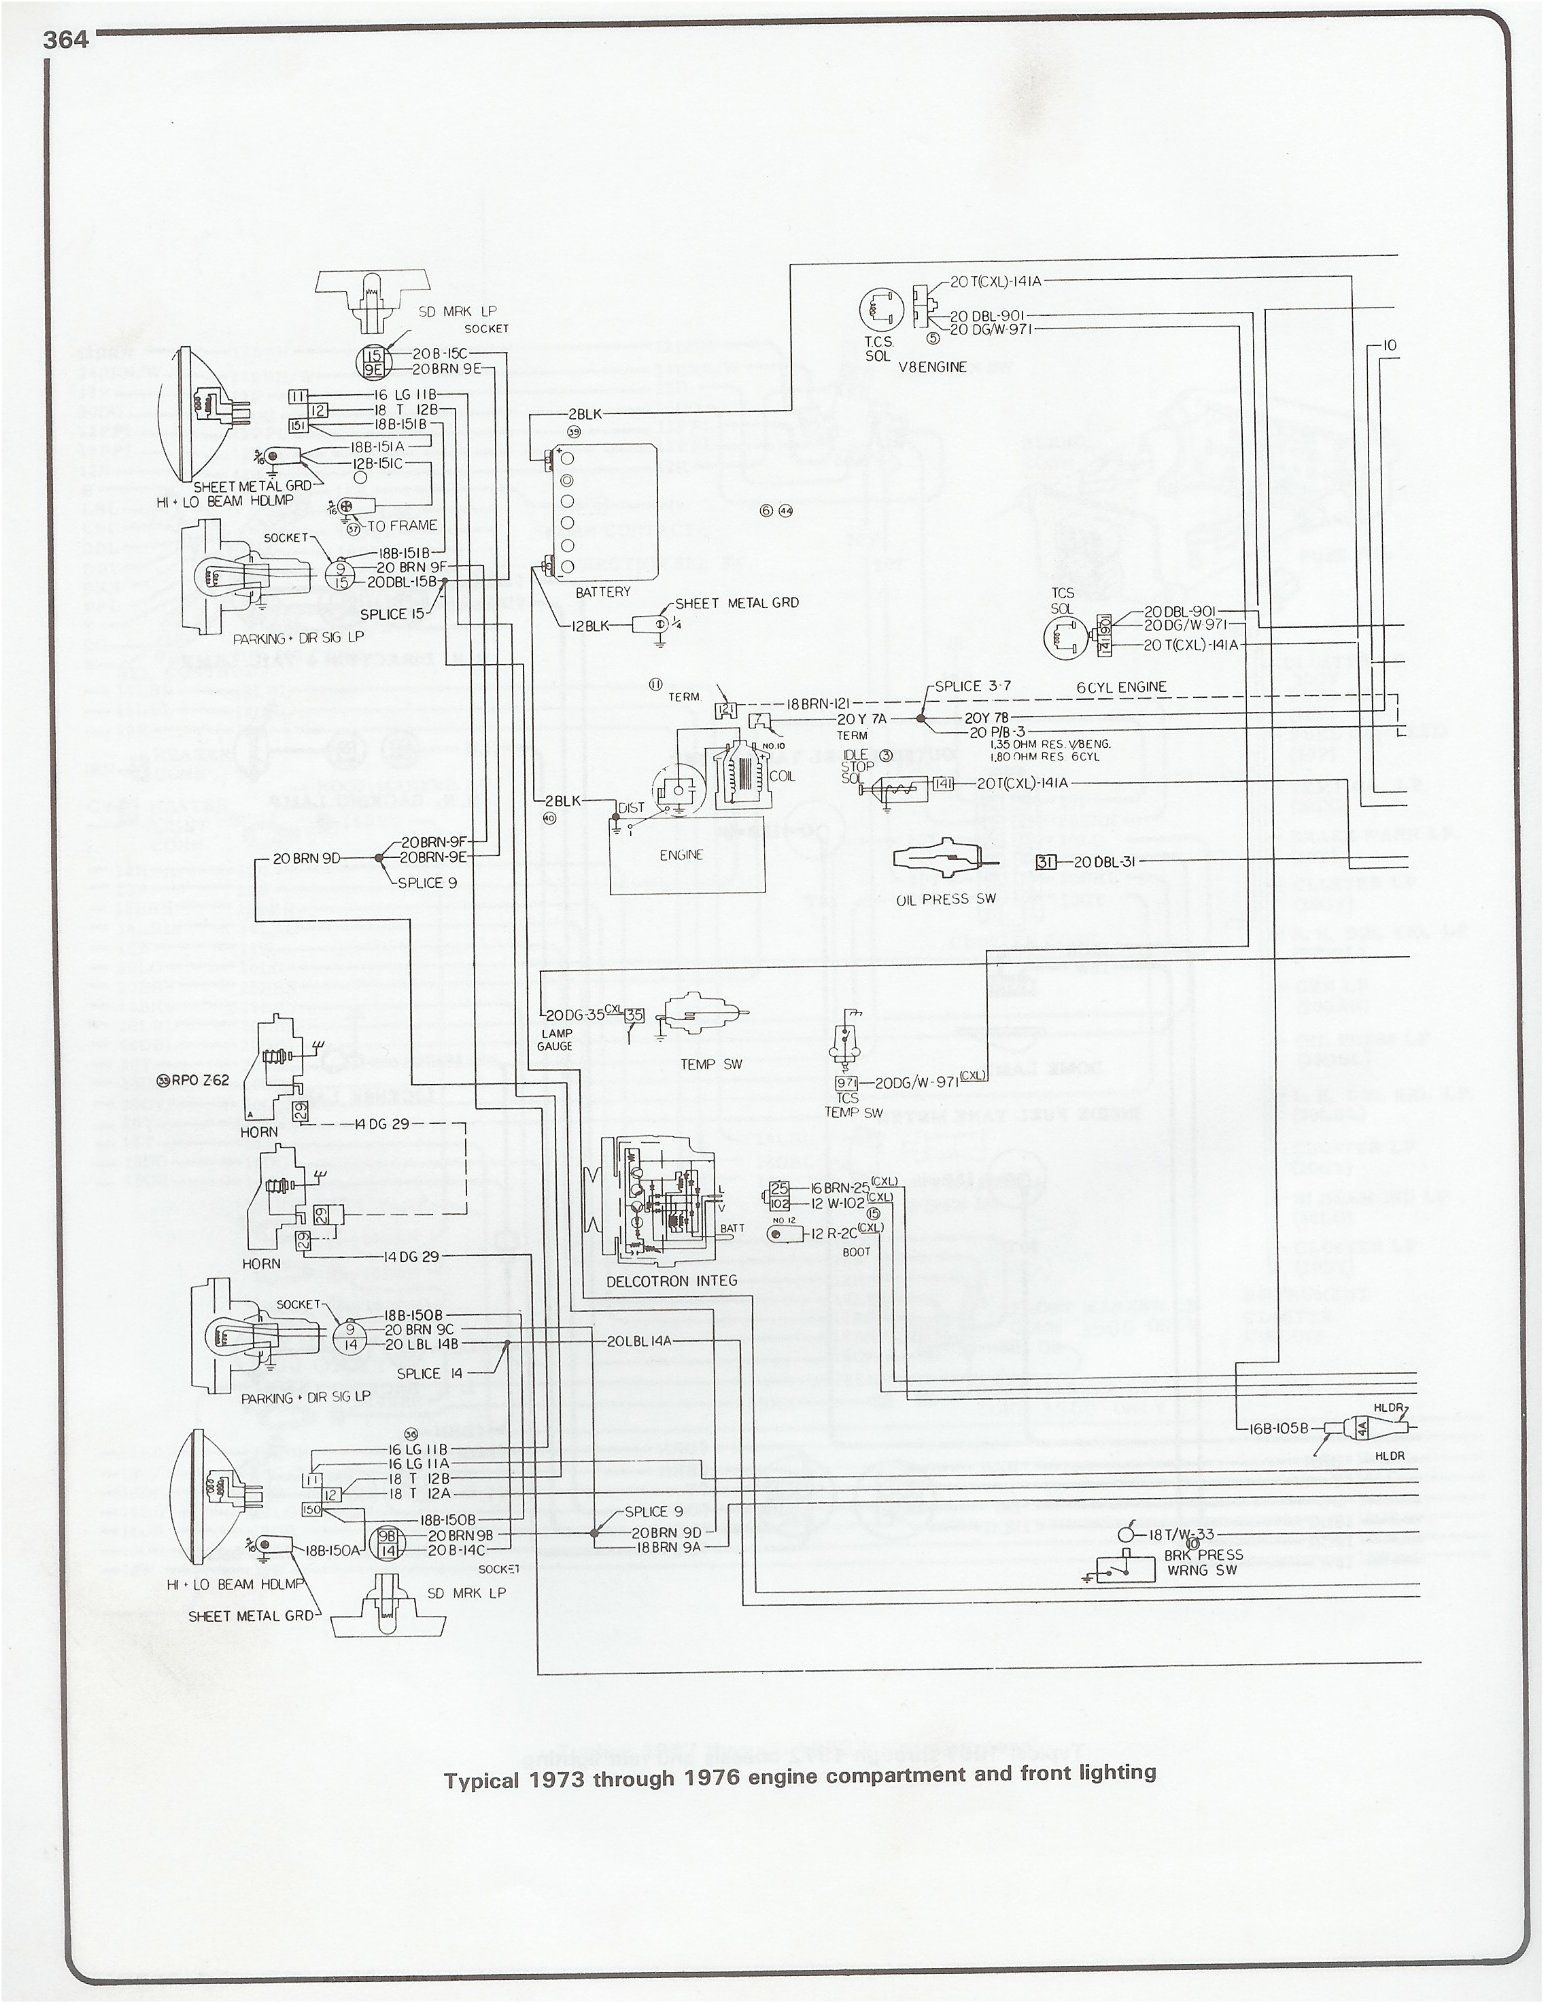 wiring diagram 1973 1976 chevy pickup chevy wiring diagram 1974 chevy pickup wiring [ 1544 x 2003 Pixel ]